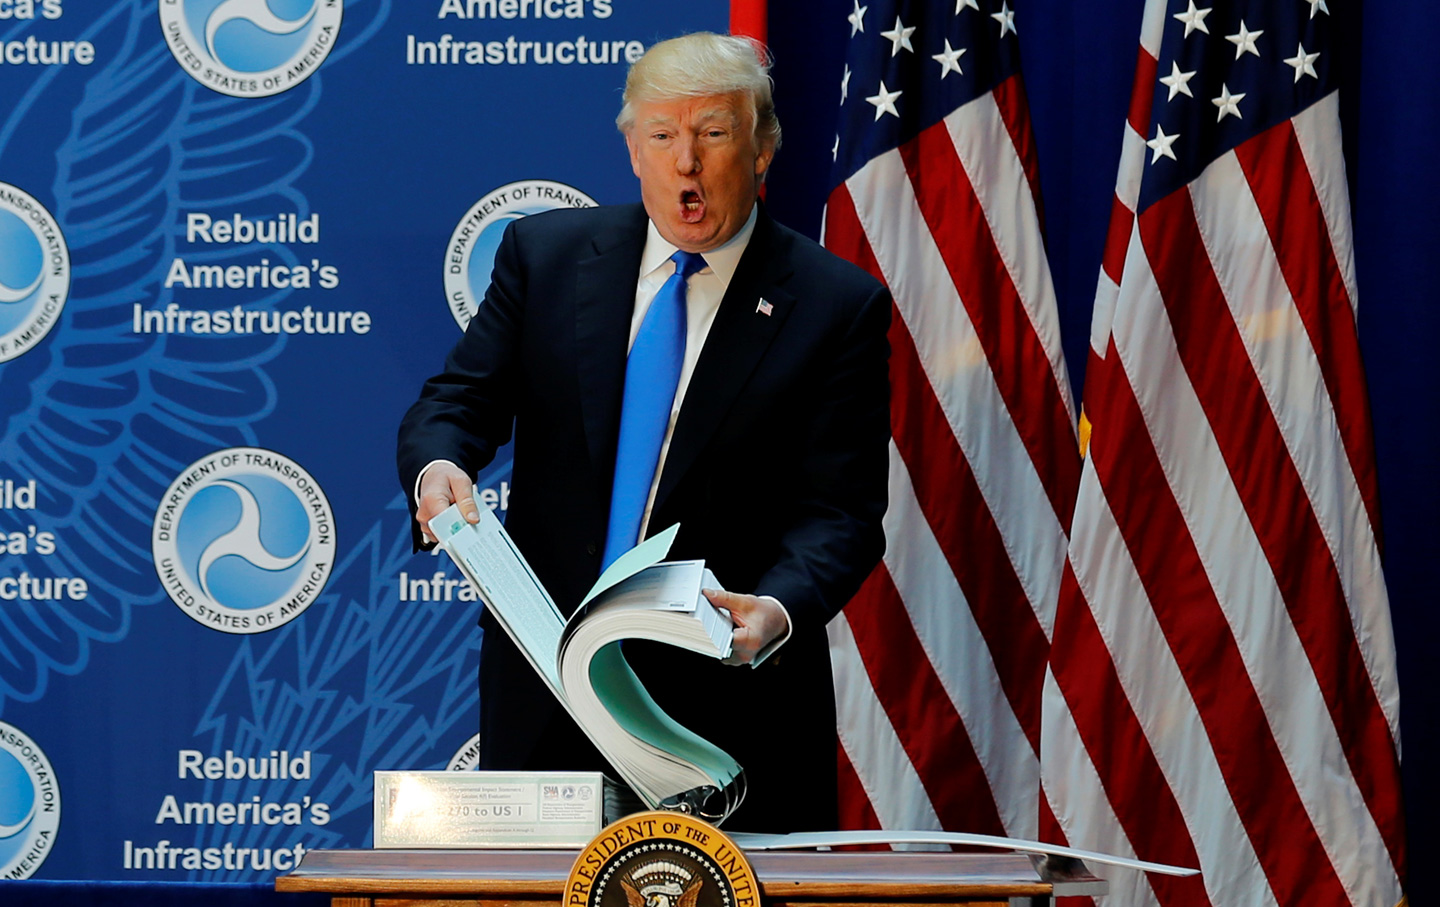 Donald-Trump-Infrastructure-rtr-img